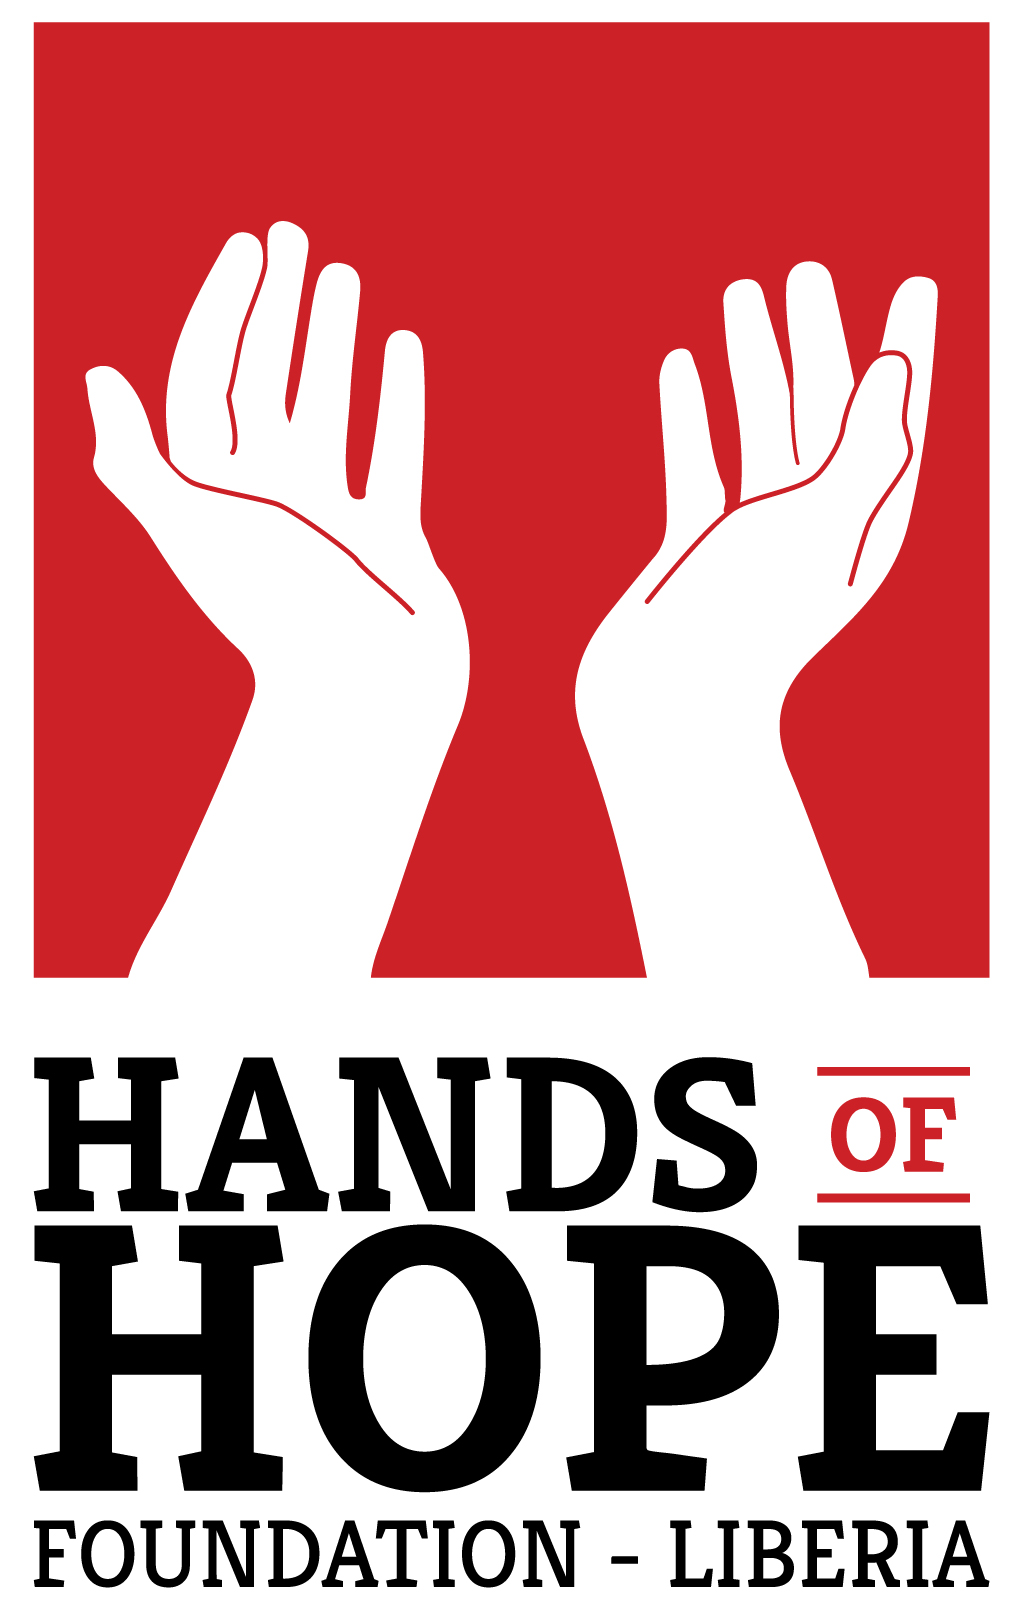 hands-of-hope-Liberia.jpg